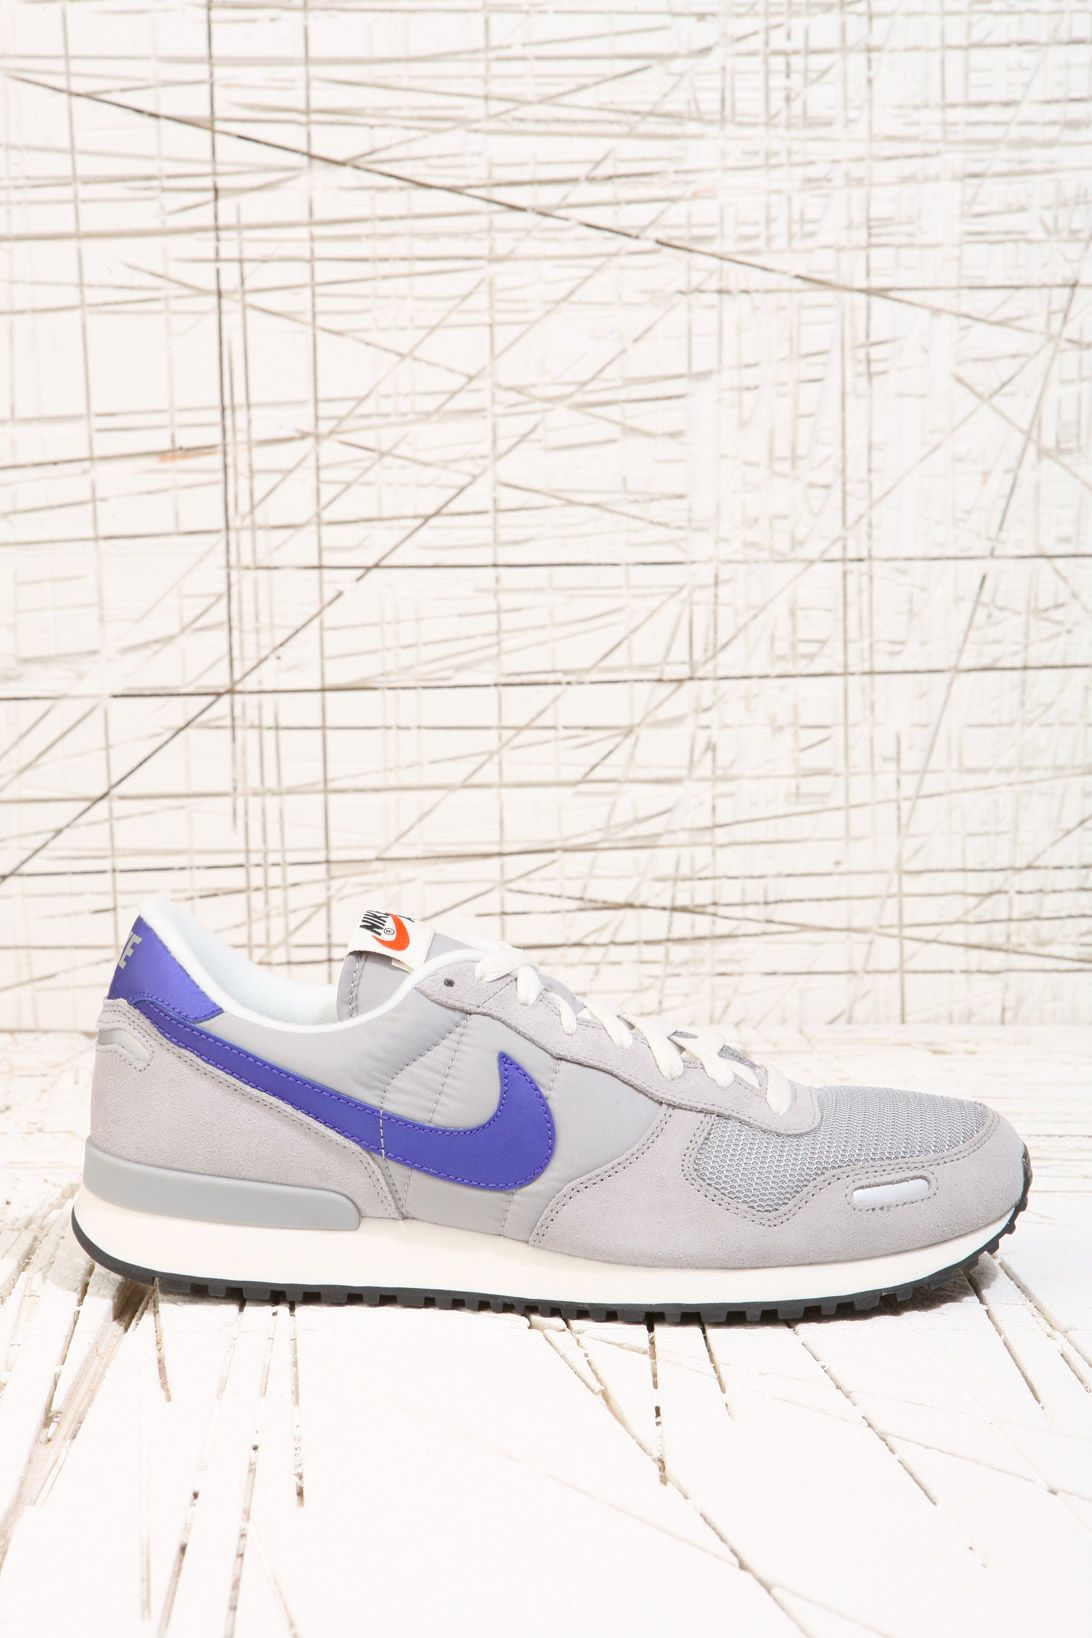 Nike Air Vortex Trainers in Silver at Urban Outfitters Garms